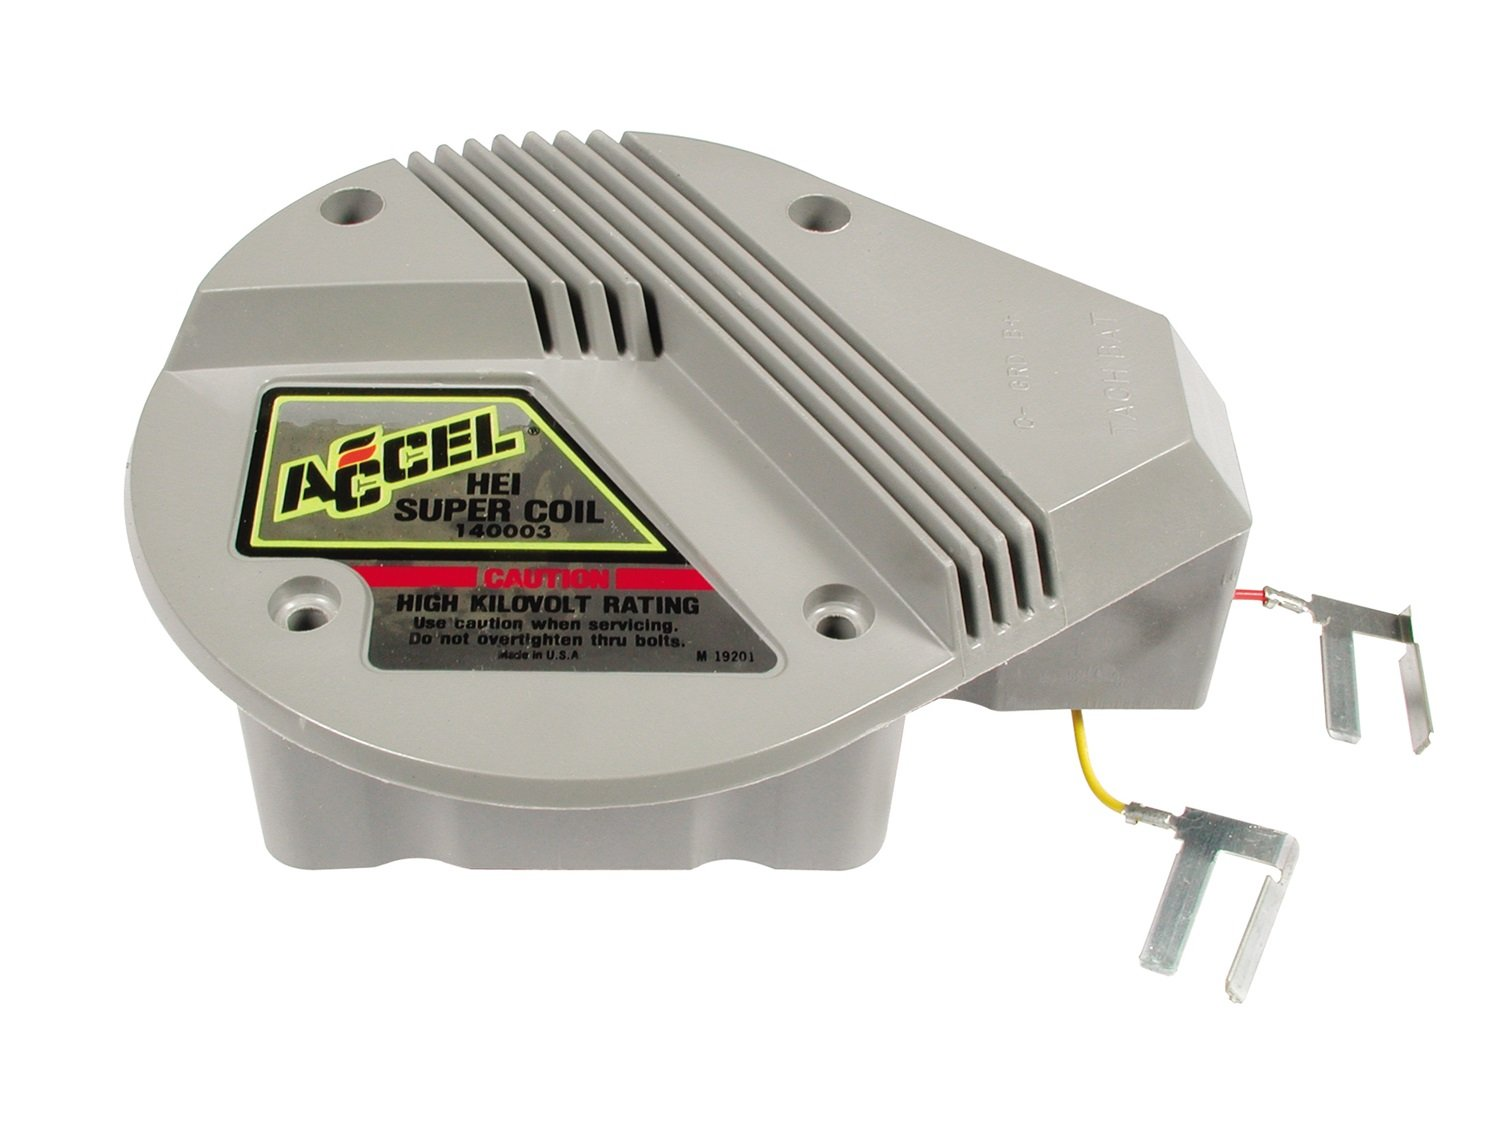 Accel 140003 Hei Red And Yellow In Cap Super Coil Chevy 350 Distributor Rebuild Kit Automotive